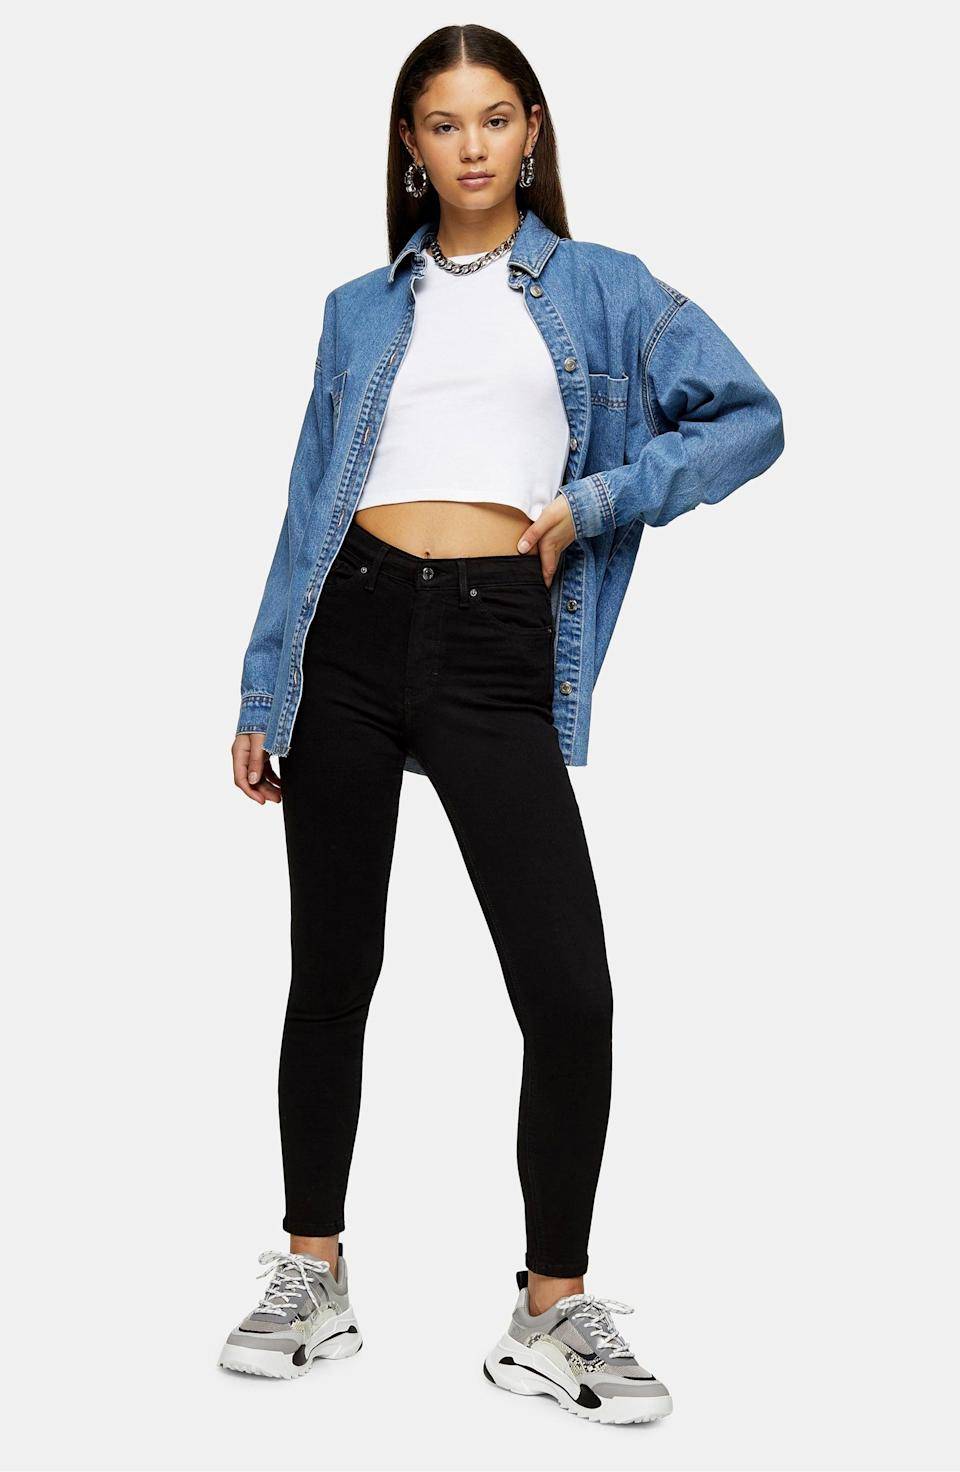 "<p>Customers love these bestselling <a href=""https://www.popsugar.com/buy/Topshop-Jamie-High-Waist-Black-Jeans-585697?p_name=Topshop%20Jamie%20High%20Waist%20Black%20Jeans&retailer=shop.nordstrom.com&pid=585697&price=49&evar1=fab%3Aus&evar9=45615413&evar98=https%3A%2F%2Fwww.popsugar.com%2Ffashion%2Fphoto-gallery%2F45615413%2Fimage%2F47583279%2FTopshop-Jamie-High-Waist-Black-Jeans&list1=shopping%2Cdenim%2Cwinter%2Cwinter%20fashion&prop13=mobile&pdata=1"" class=""link rapid-noclick-resp"" rel=""nofollow noopener"" target=""_blank"" data-ylk=""slk:Topshop Jamie High Waist Black Jeans"">Topshop Jamie High Waist Black Jeans</a> ($49, originally $70).</p>"